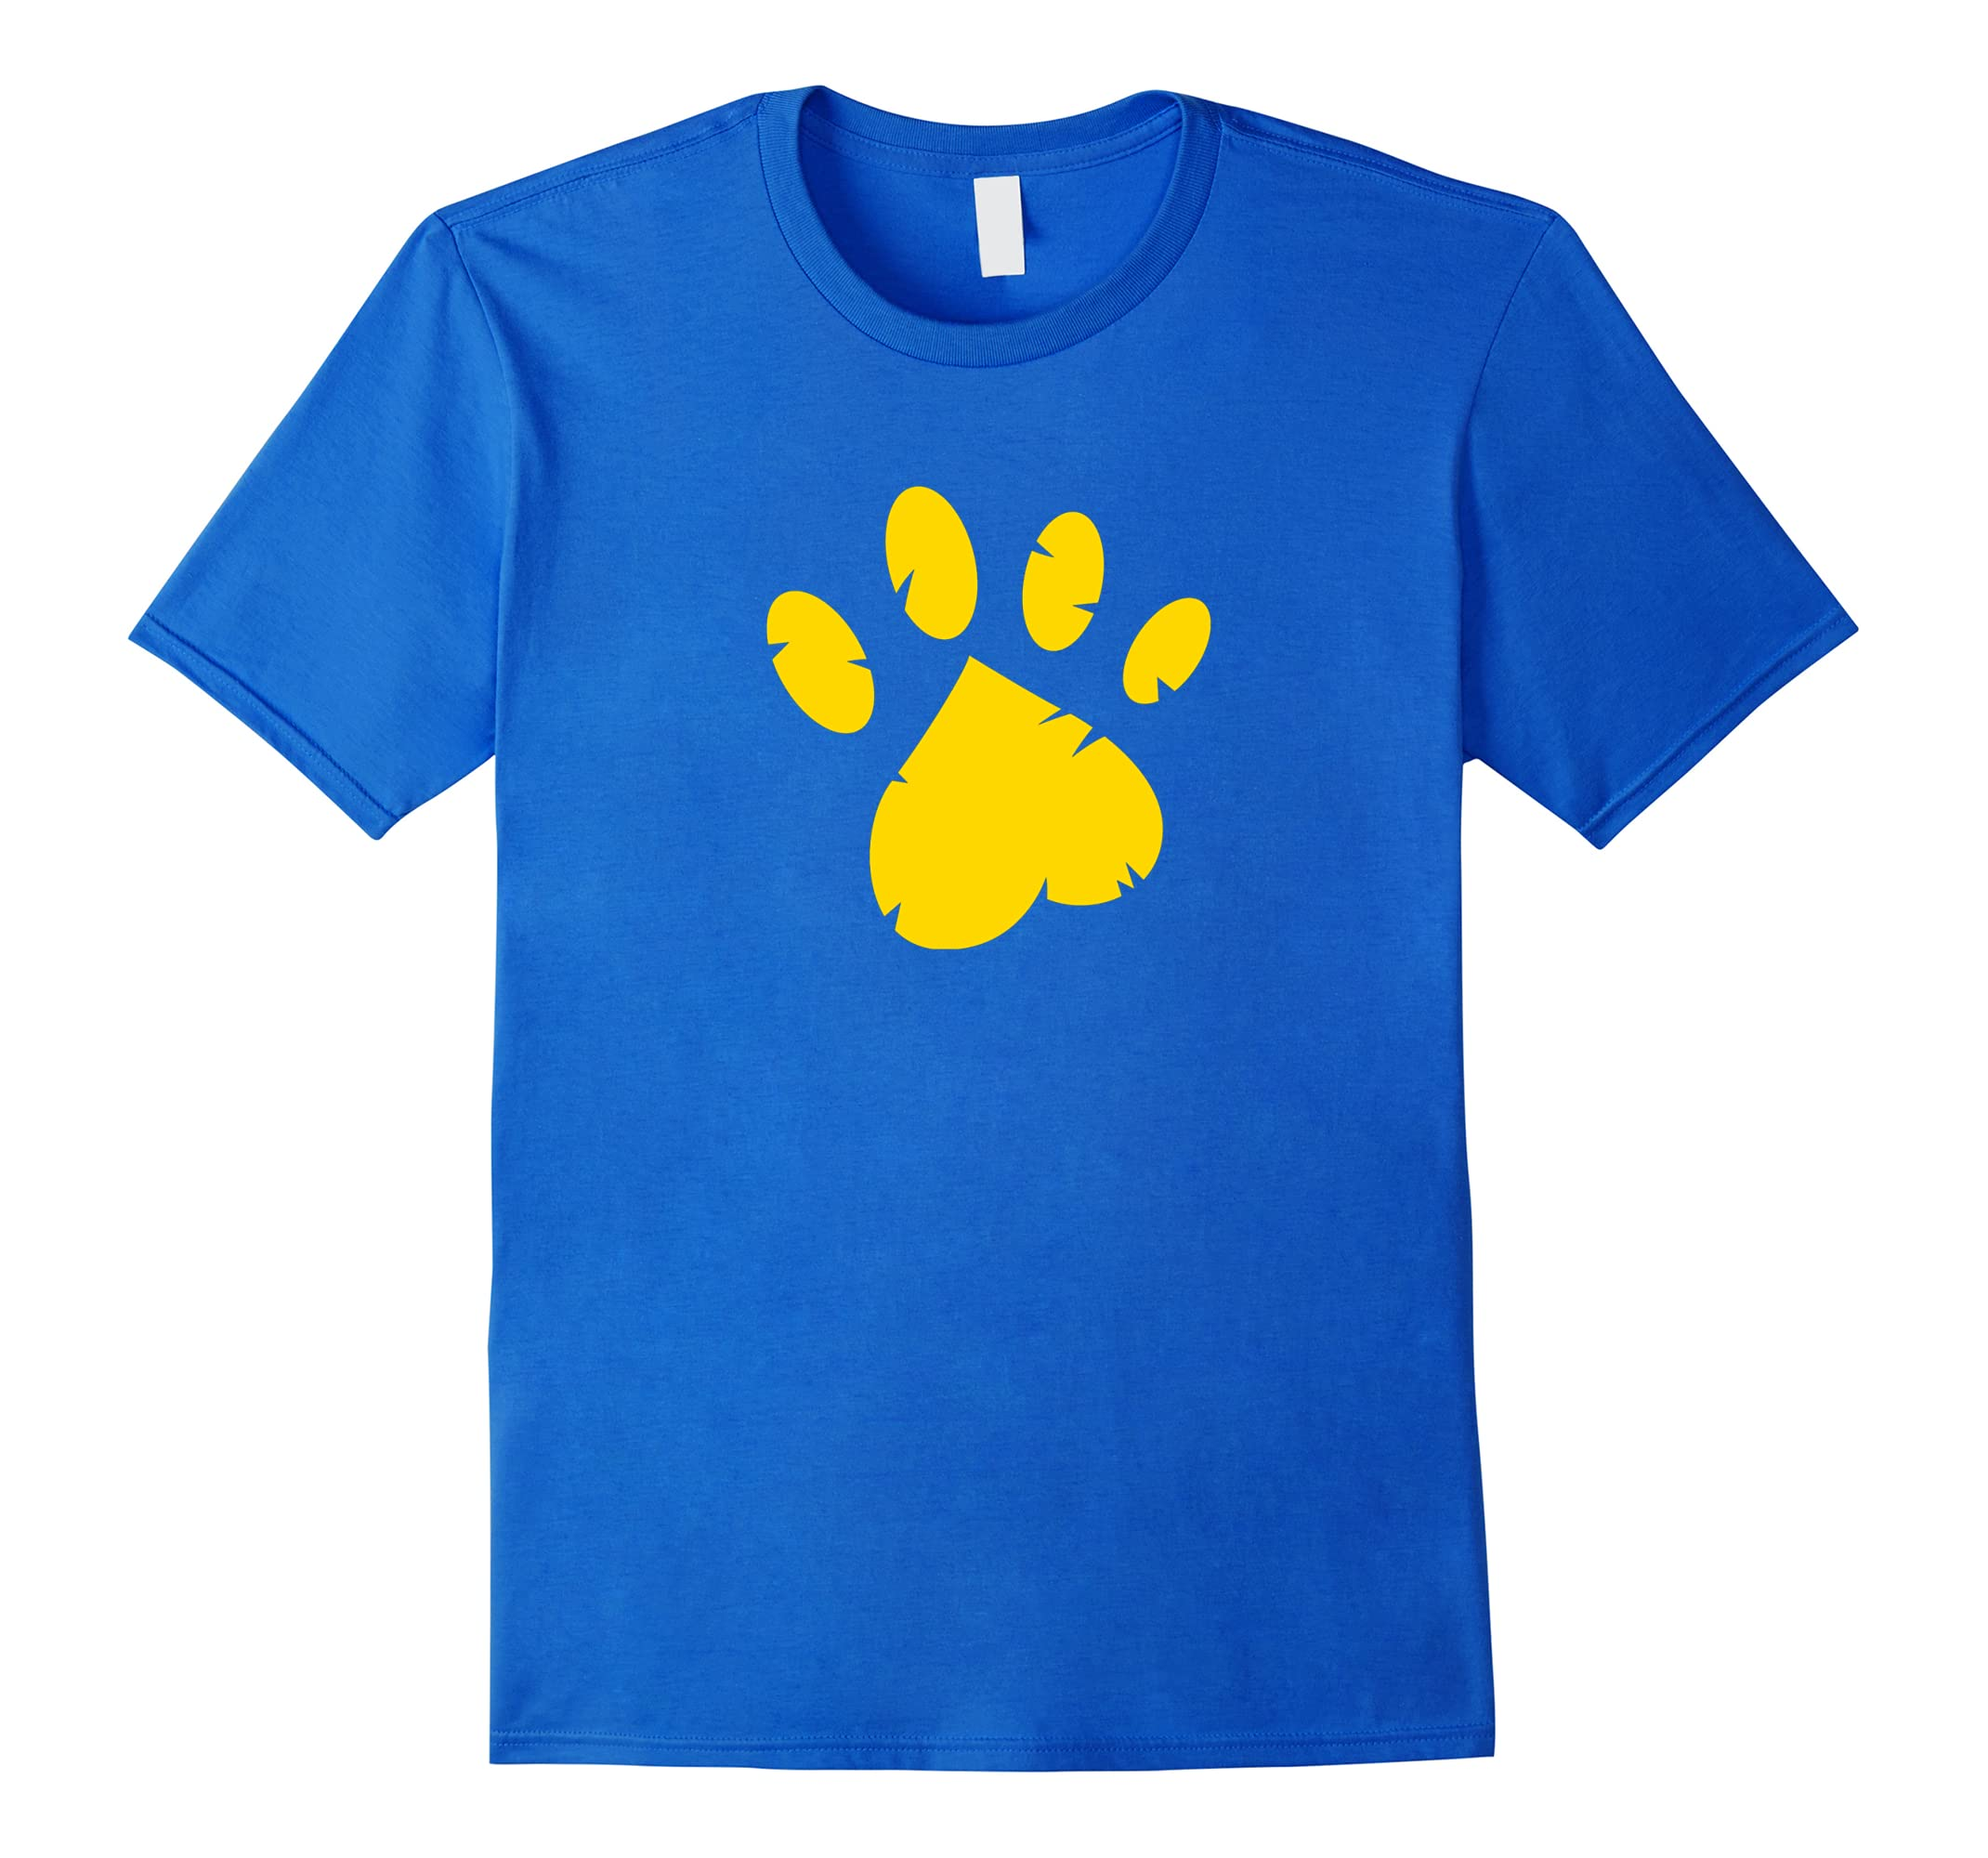 Animal Rescue T-Shirt in Royal Blue with Gold Paw-ah my shirt one gift